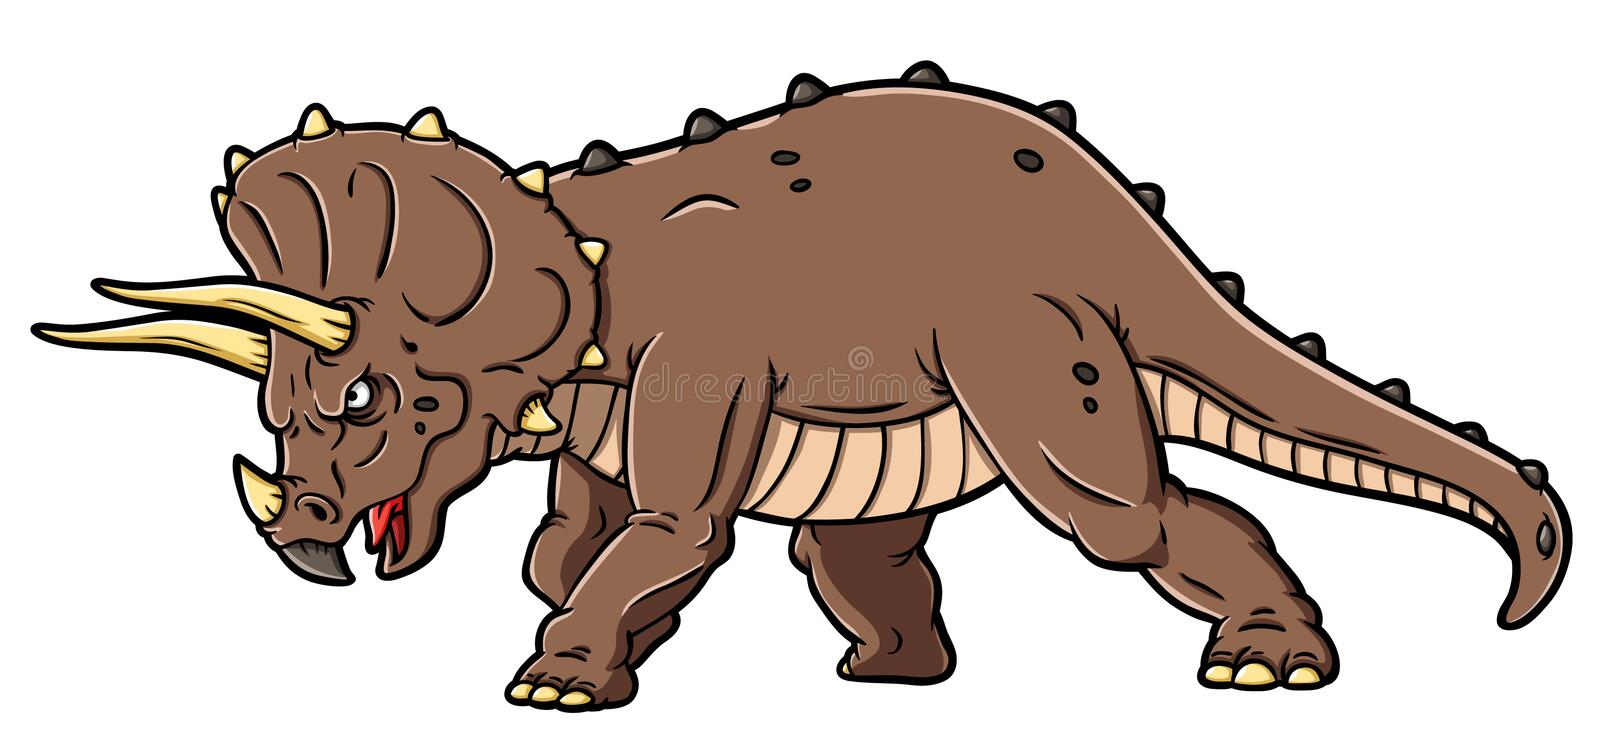 Triceratops Dinosaur Infant Tyrannosaurus - Dinosaur Clipart - Free  Transparent PNG Clipart Images Download